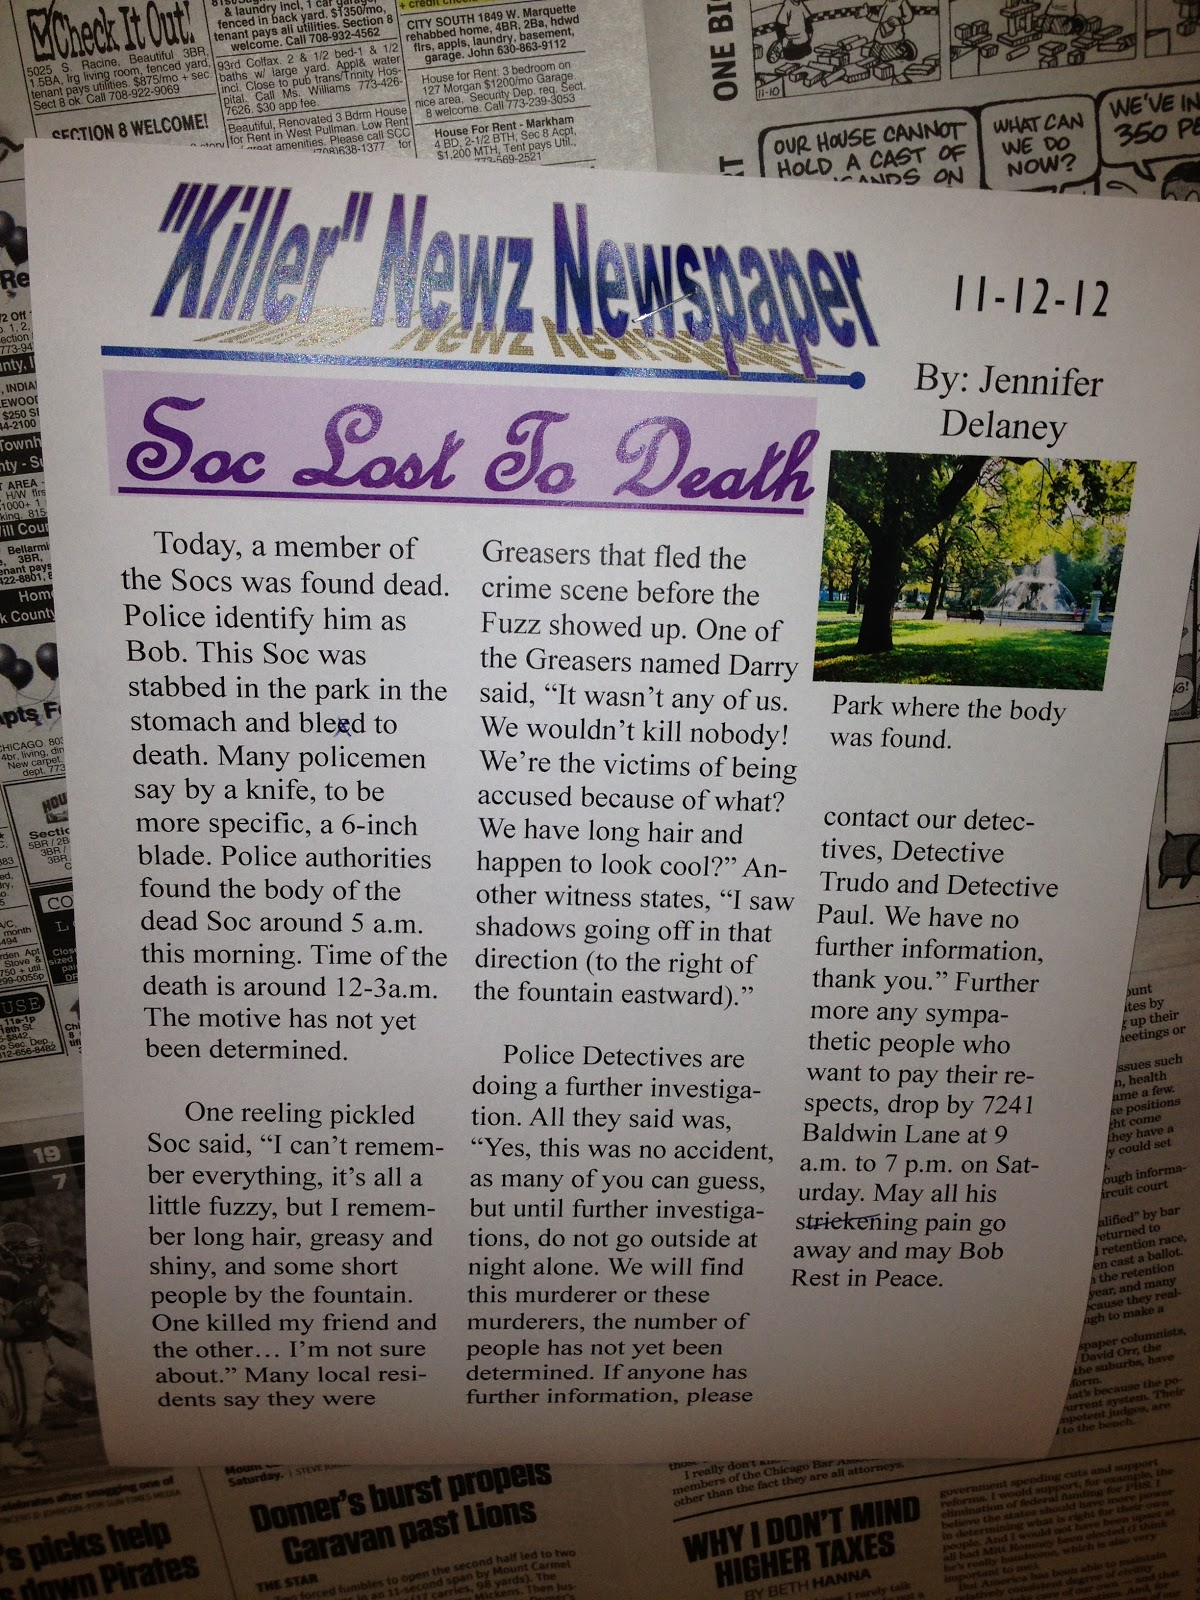 news article writing assignment for middle school